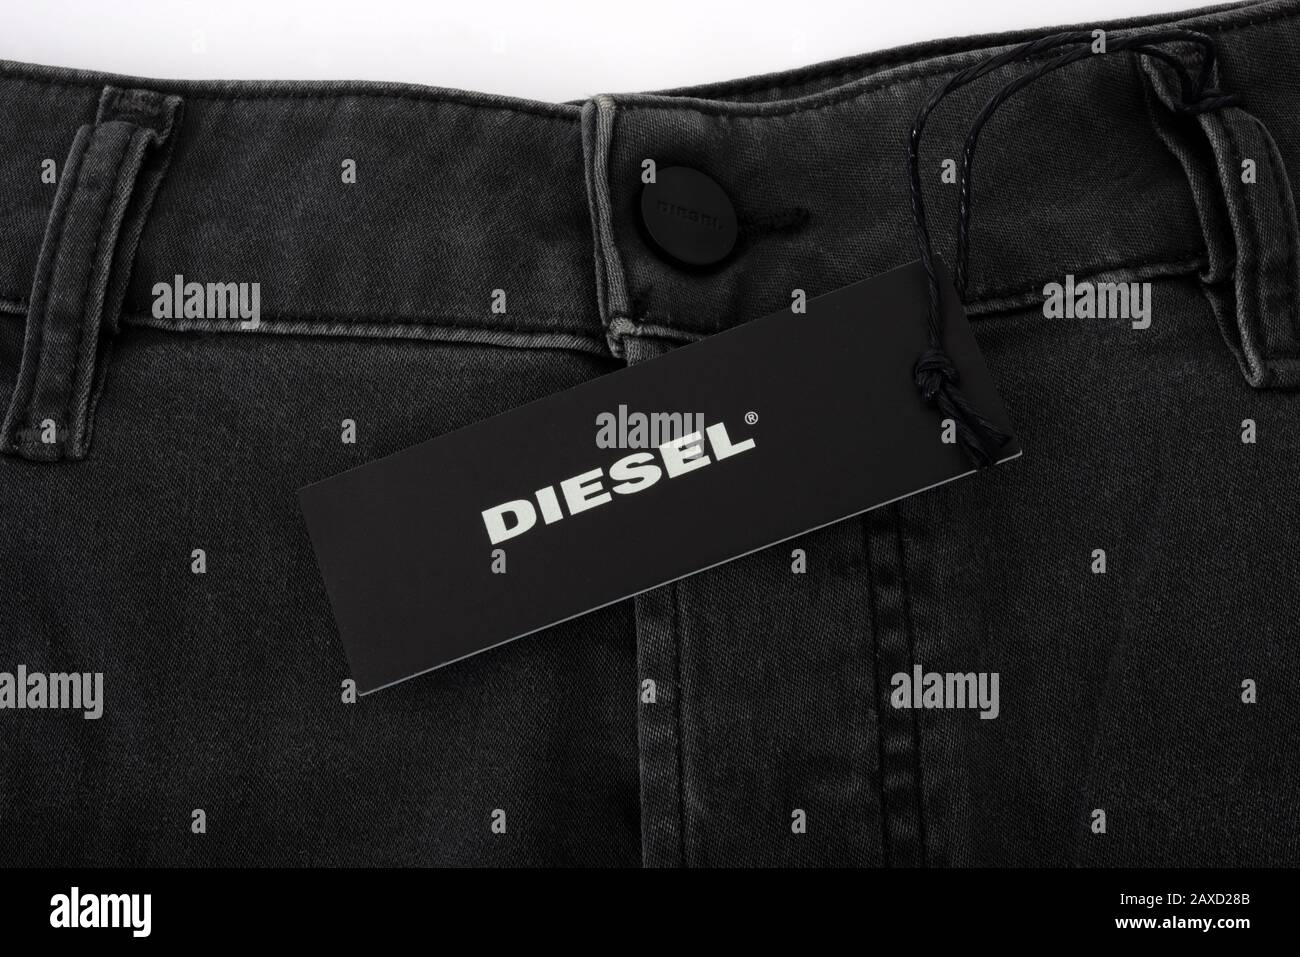 Diesel Jeans High Resolution Stock Photography And Images Alamy